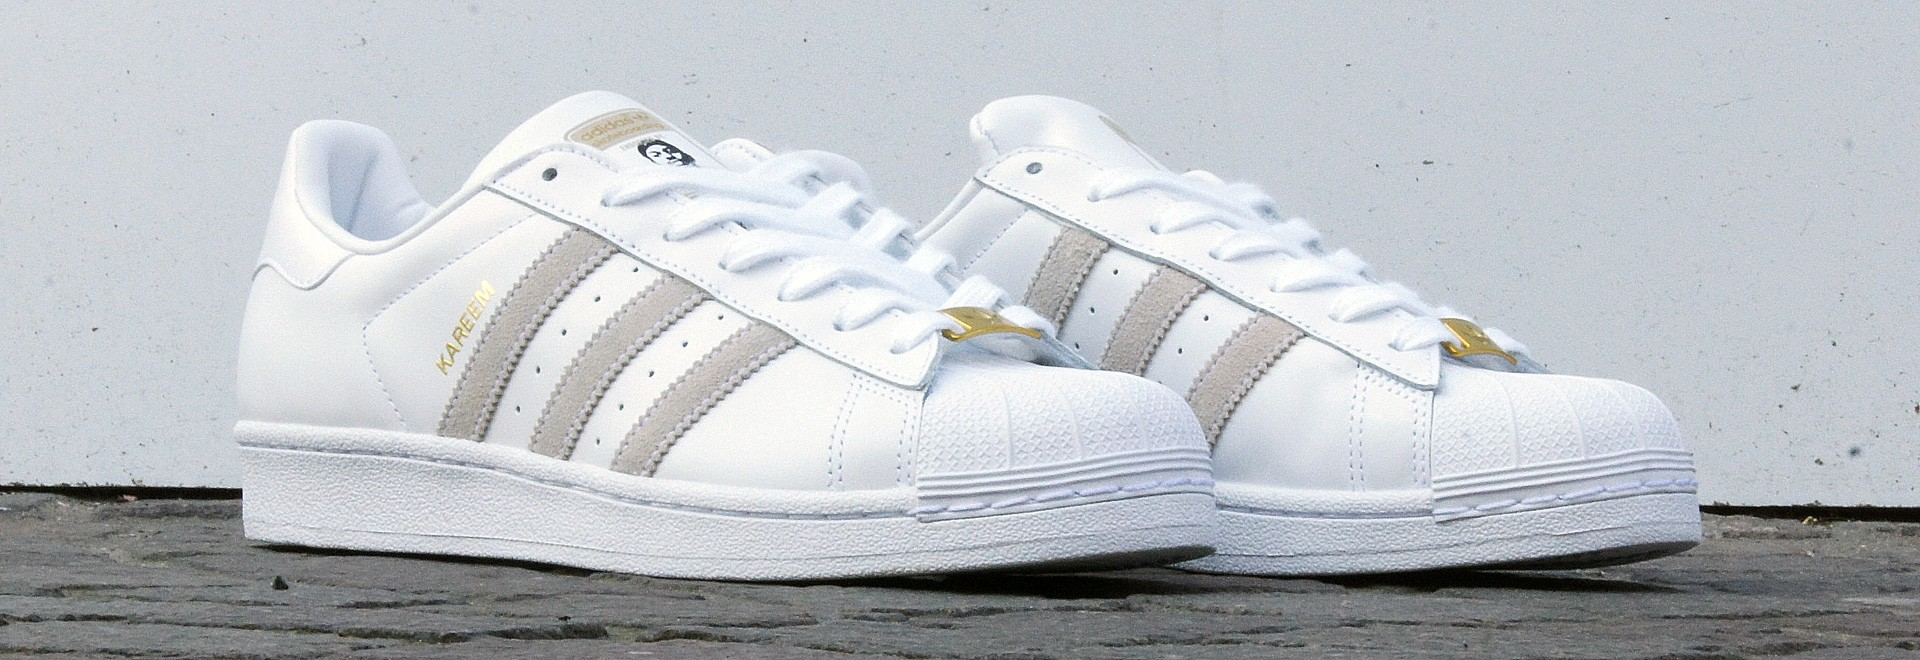 Adidas Superstar RT footwear white